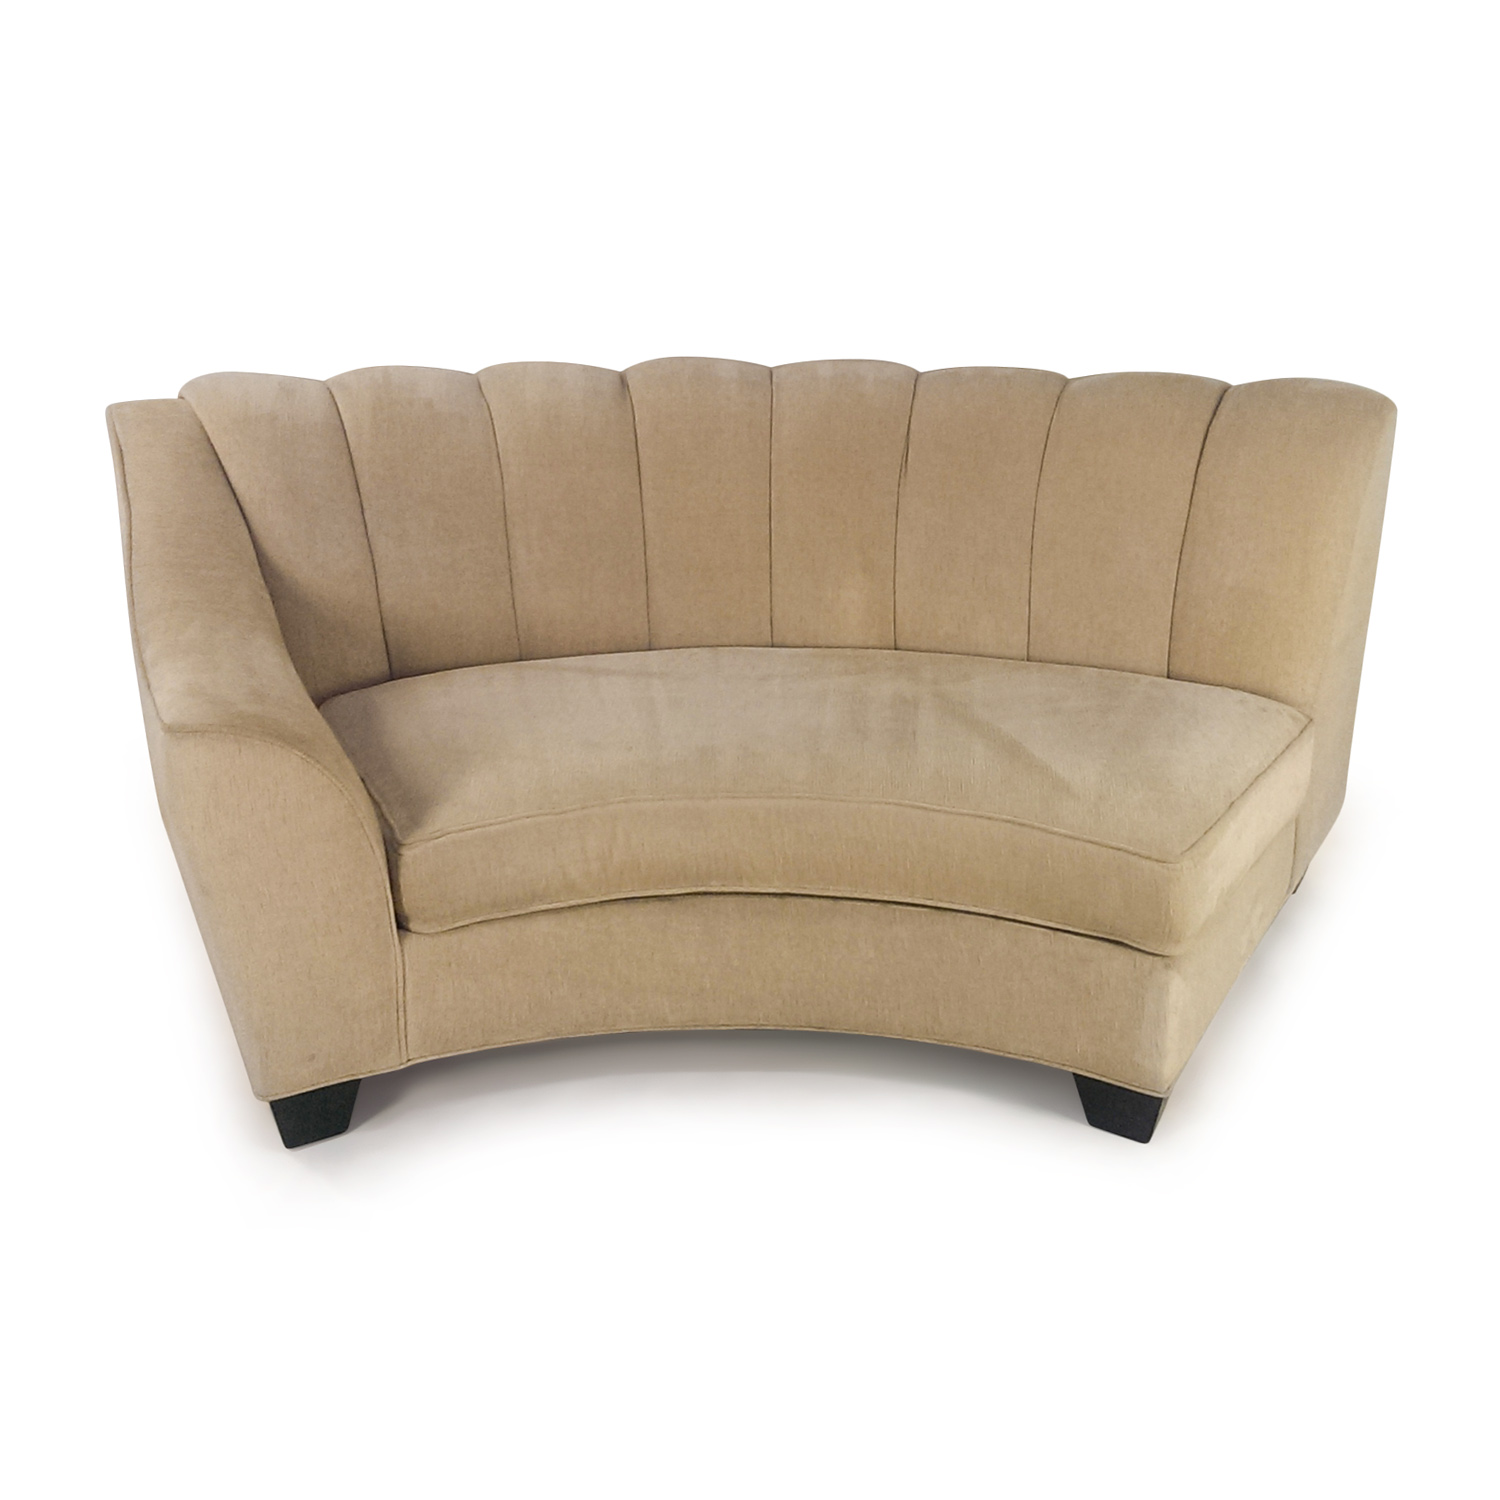 Cindy Crawford Cindy Crawford Beige Loveseat nyc